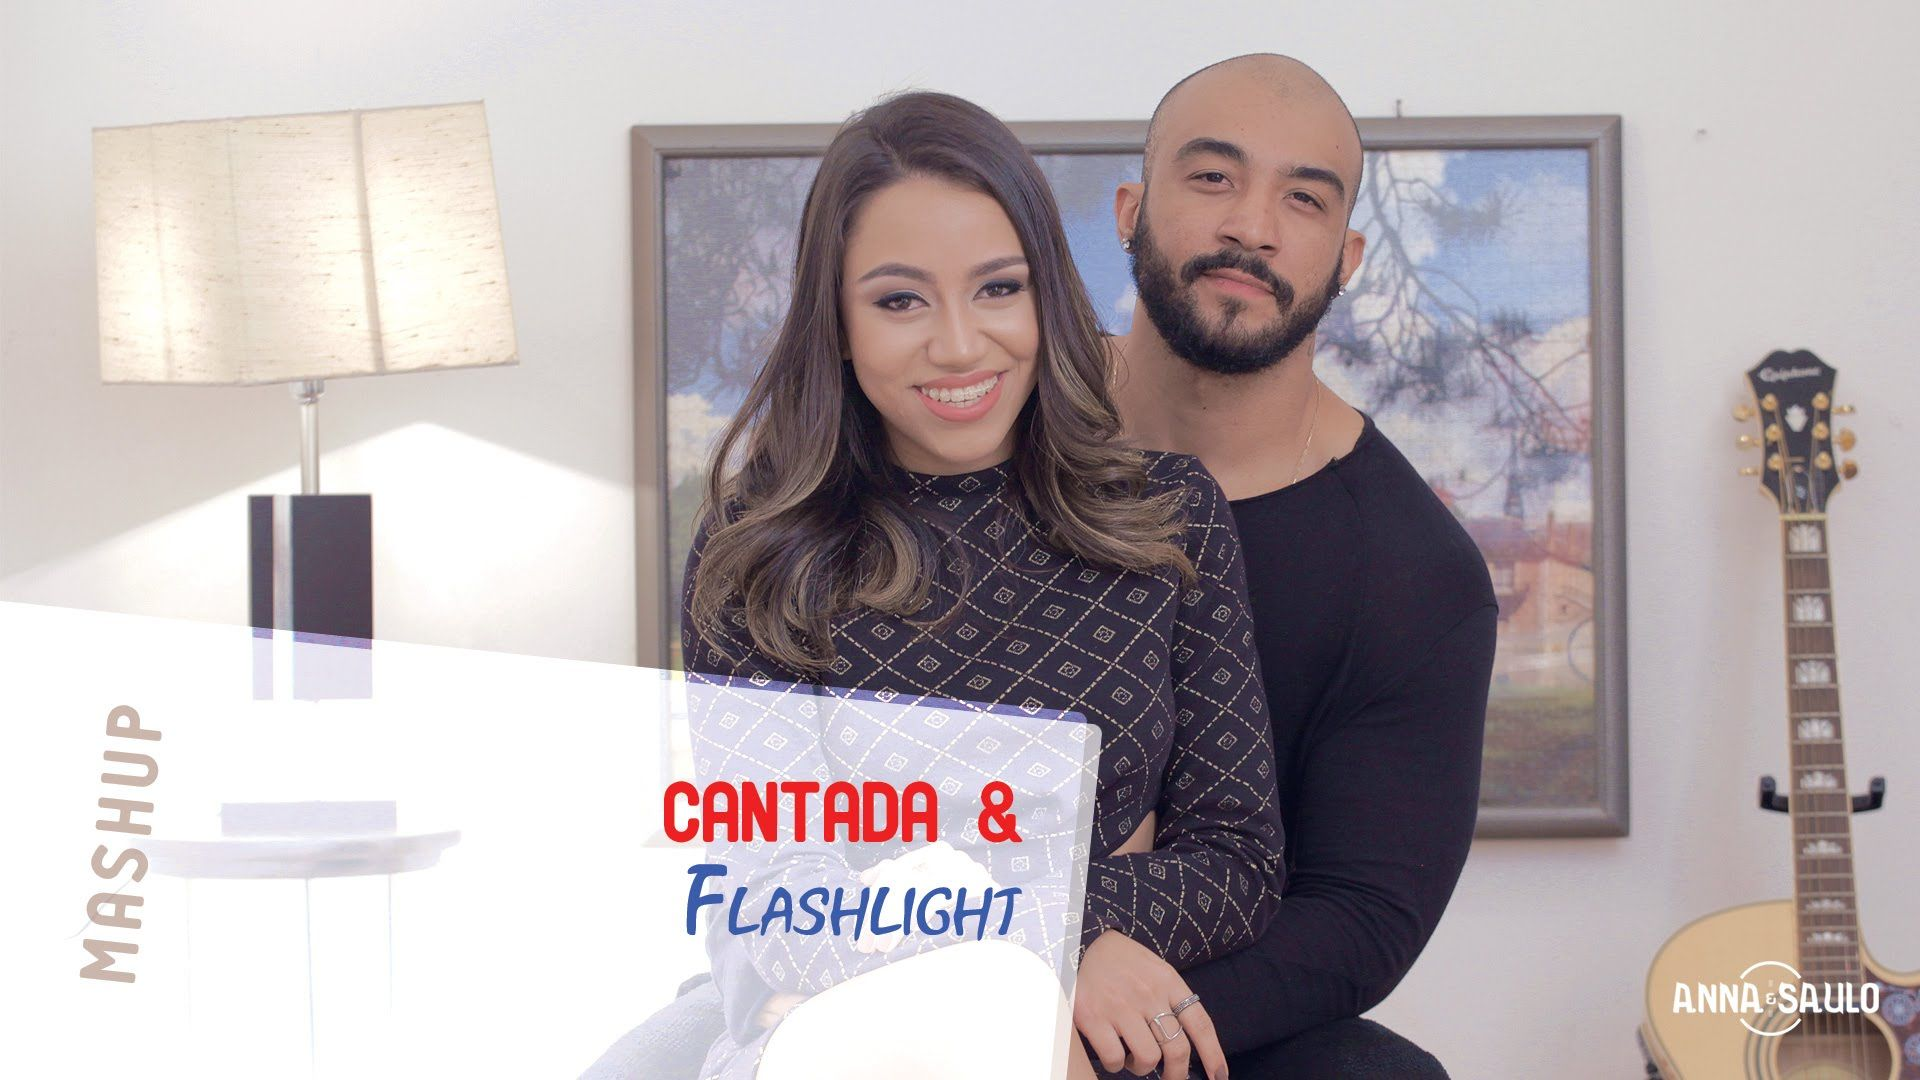 Anna e Saulo - (Mashup - Cantada & Flashlight)